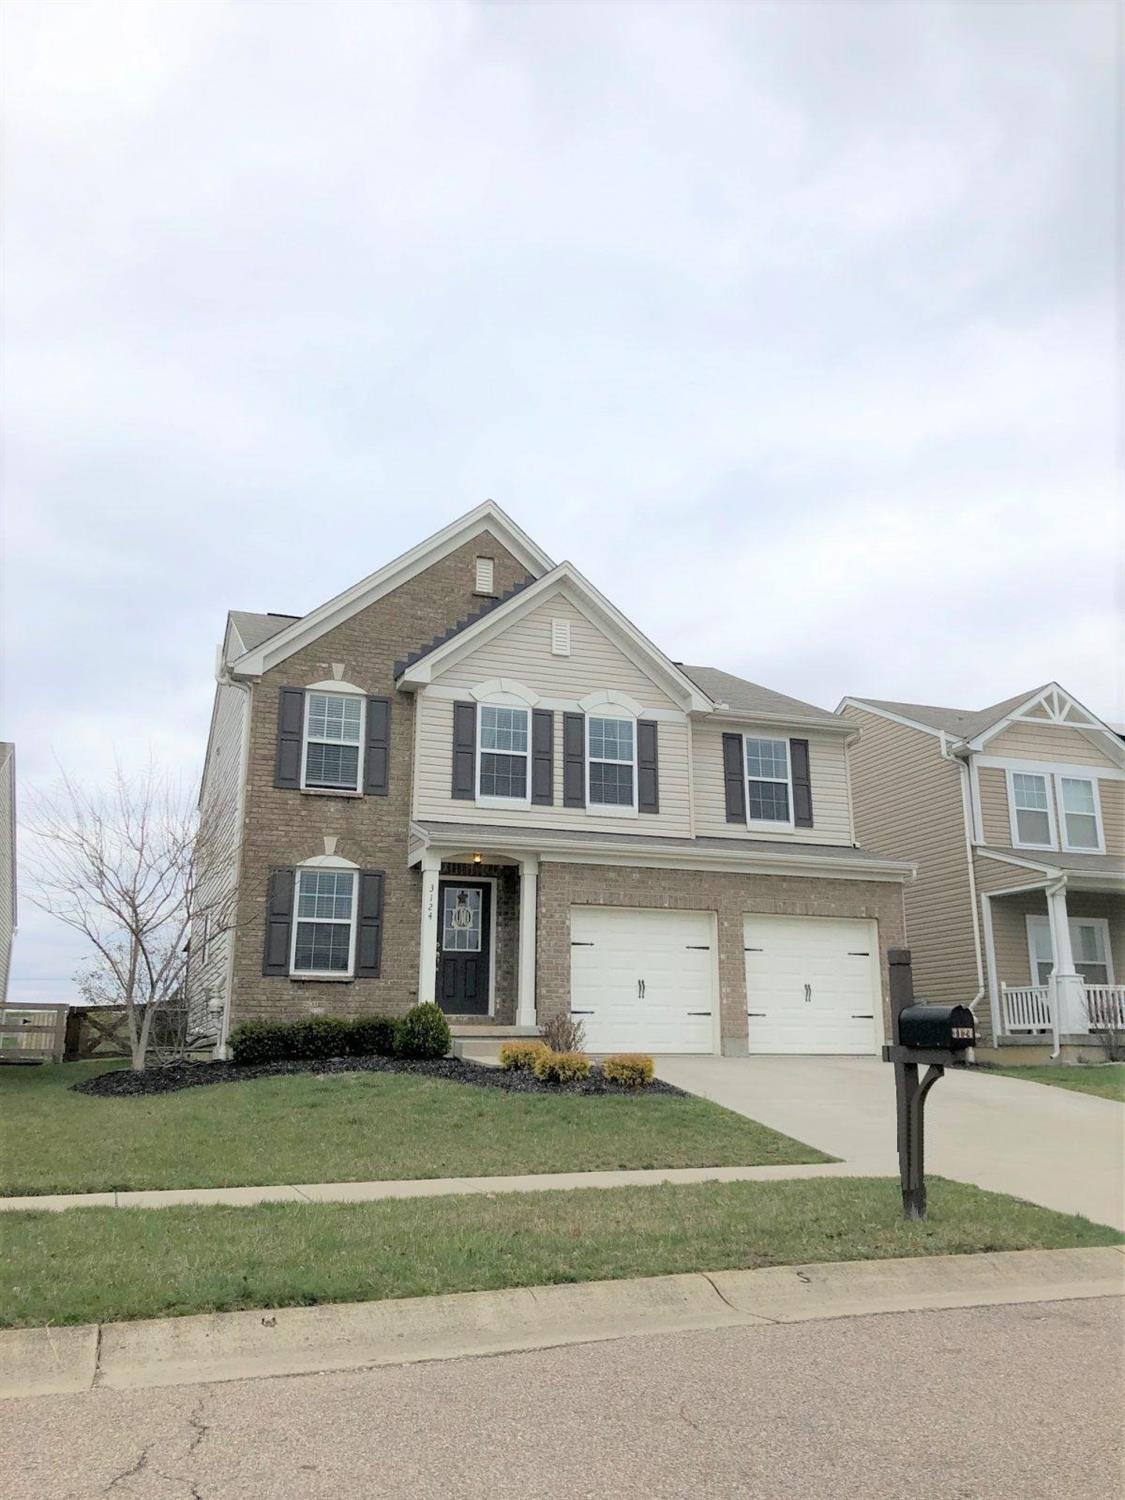 Property for sale at 3124 Yellowtail Terrace, Hamilton Twp,  Ohio 45152